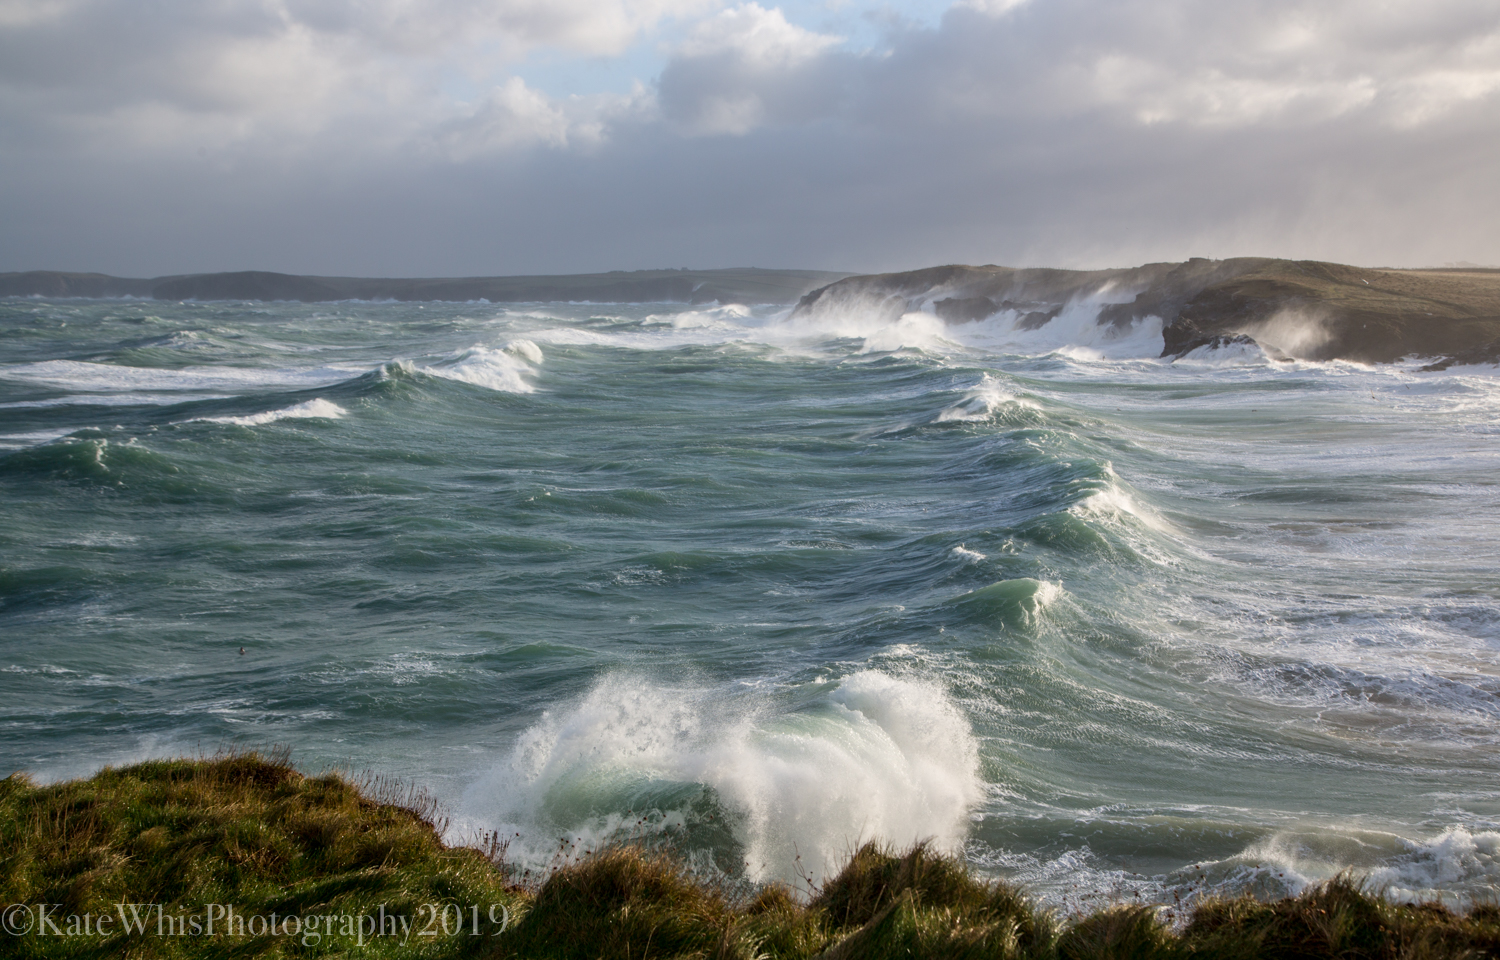 Big waves breaking into the bay at Mother Ivey's Bay